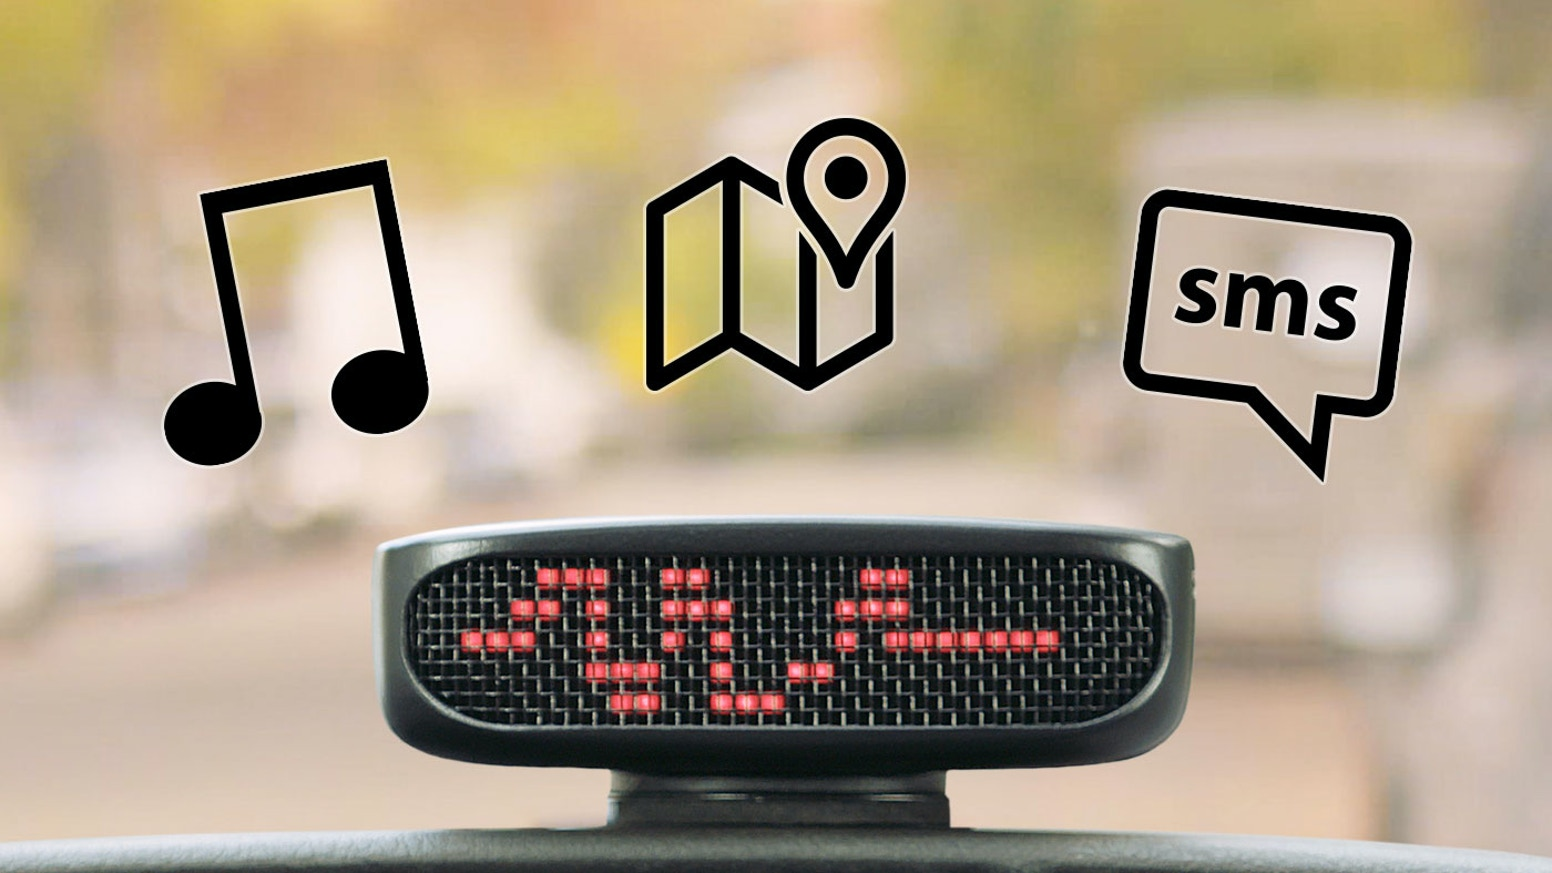 We introduce you to Voder, an AI-powered hands-free car accessory. Due to a trademark dispute, the name Dashbot* has been retired.               *Next Thing Co. is not affiliated with or sponsored or endorsed by Dashbot, Inc.